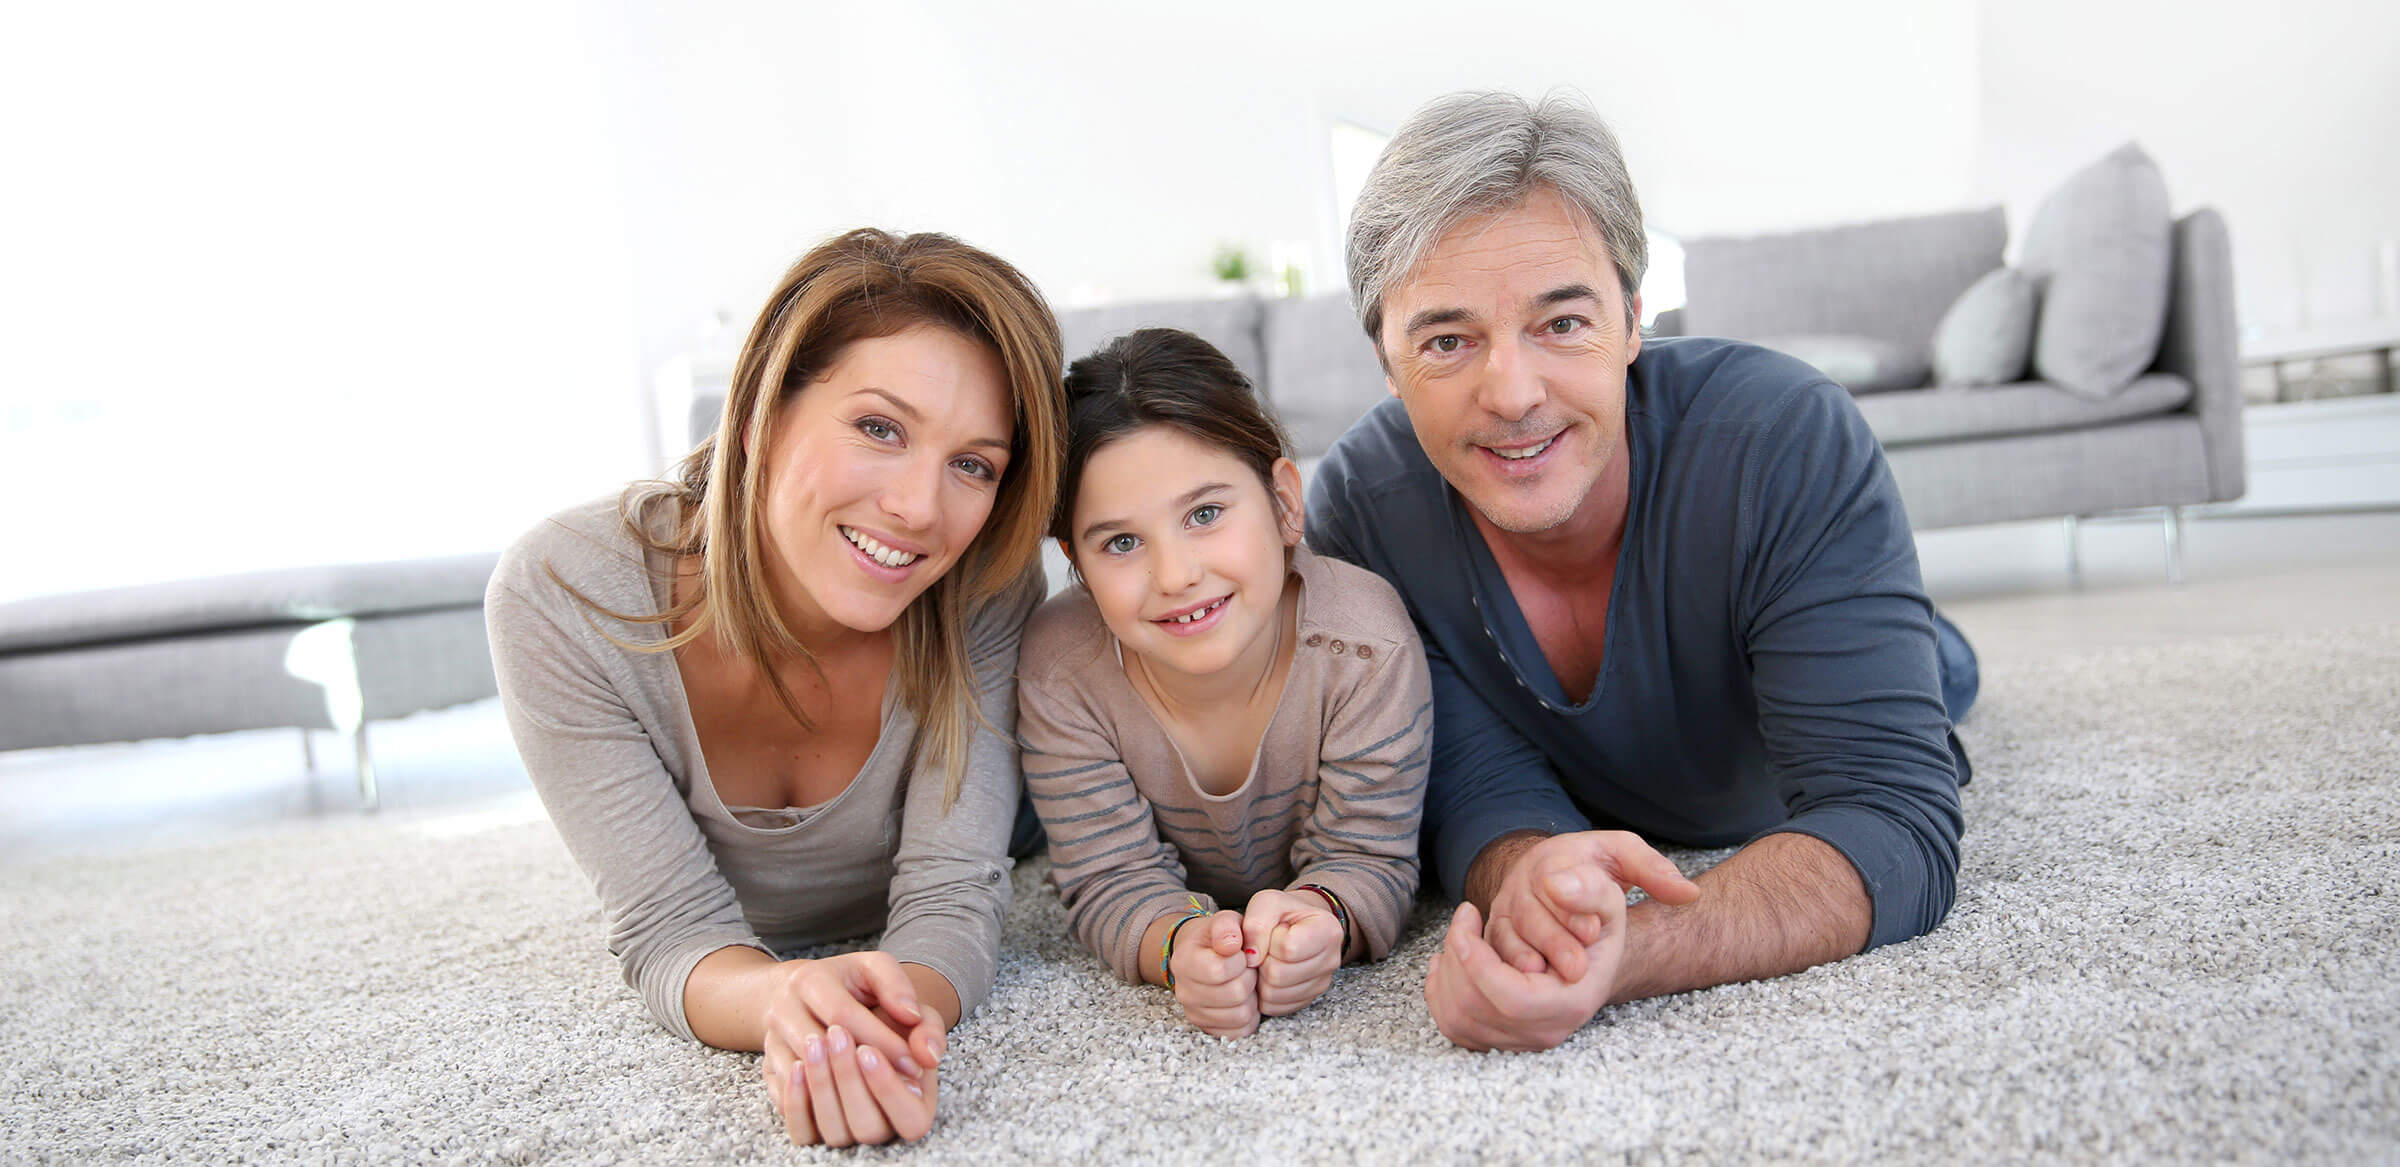 Carpet cleaning safe for child and pets